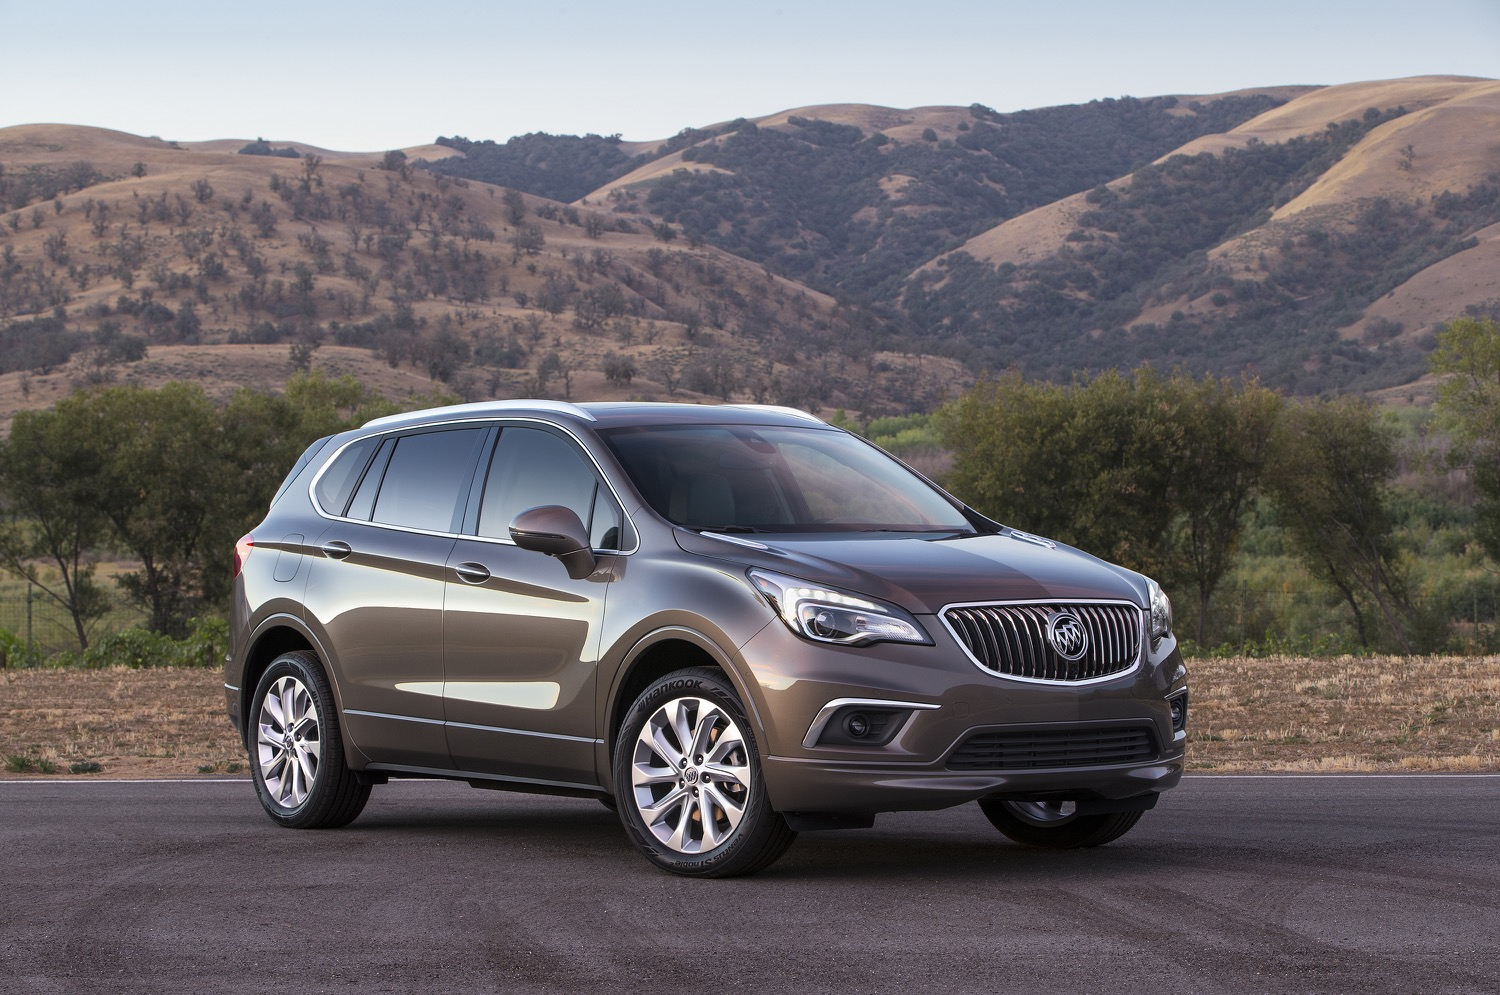 2016 Buick Envision Info, Photos, News, Specs, Wiki | Gm 2022 Buick Envision Specifications, Safety Features, Towing Capacity